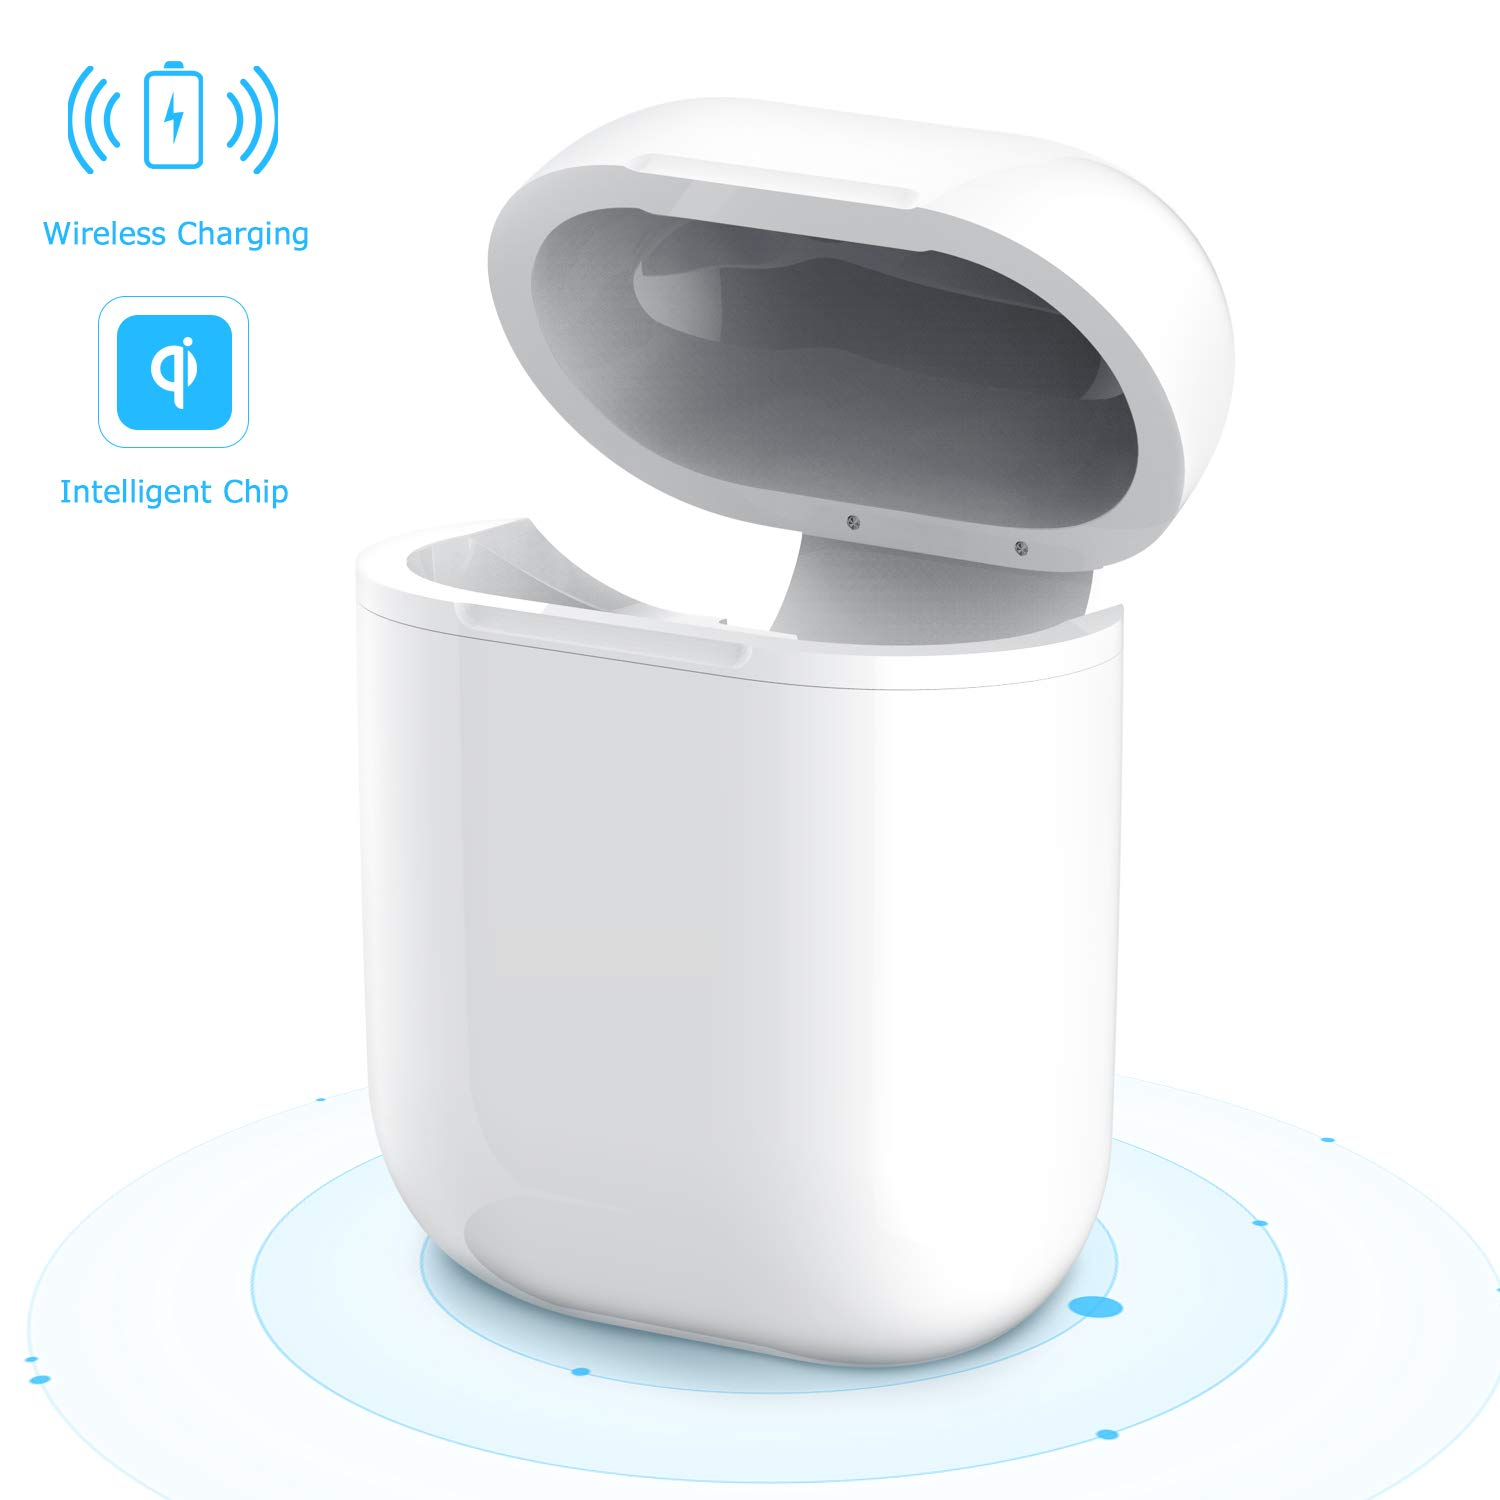 san francisco c8b87 e0428 Airpods Wireless Charging Case, Maxcio Airpods Case Protector  Cover/Skin/Accessory Qi Standard for Apple Airpods Compatible with All QI  Wireless ...